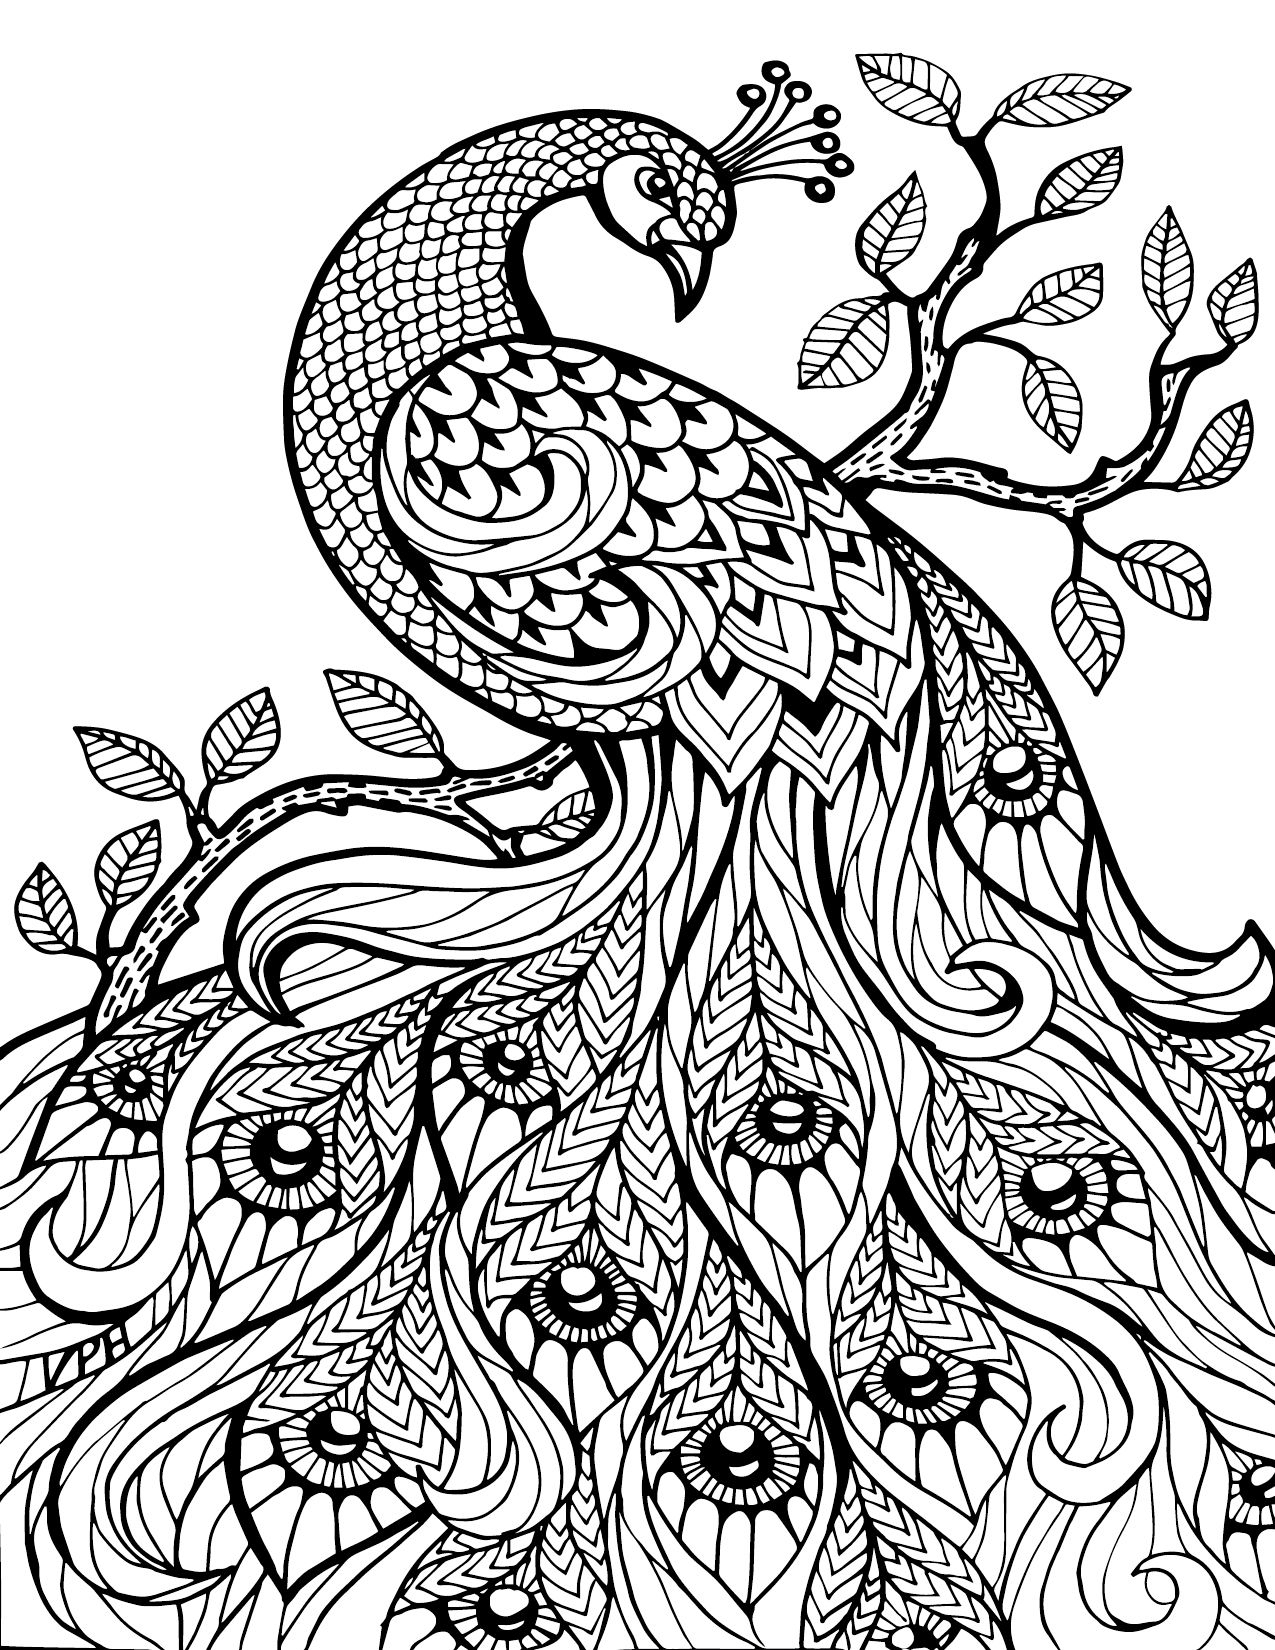 Free Printable Coloring Pages For Adults Only Image 36 Art - Free Printable Coloring Pages For Adults Only